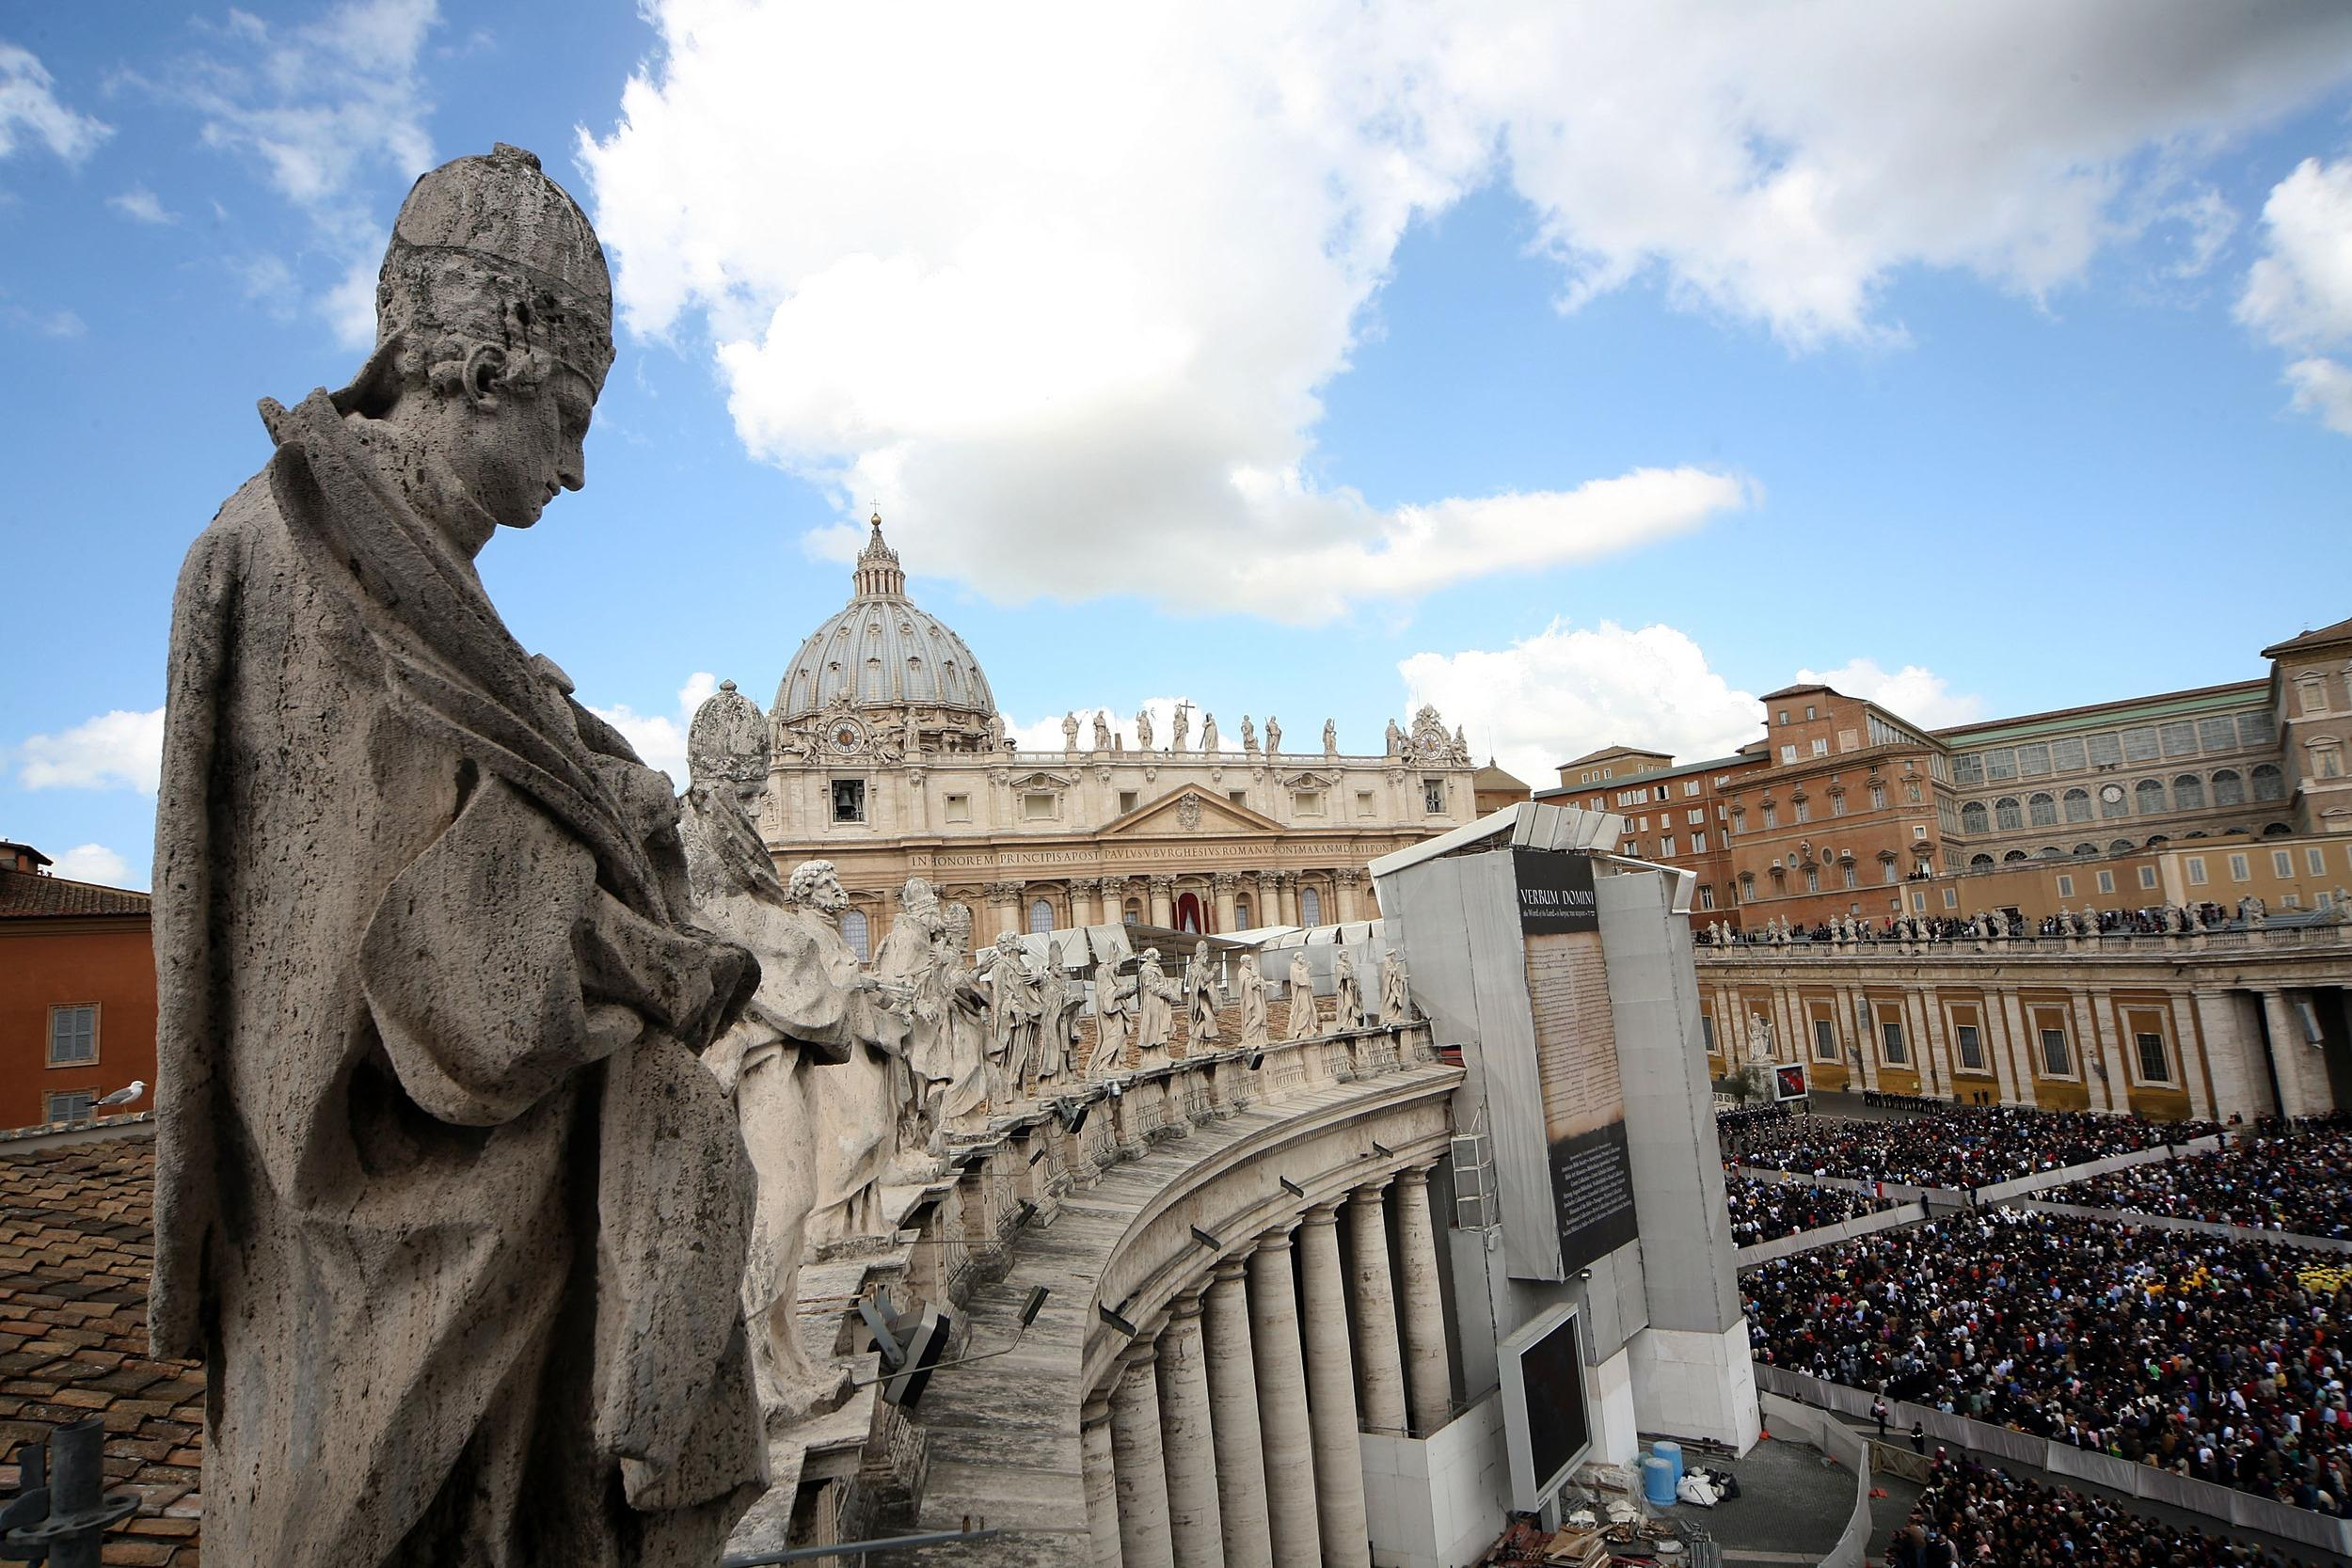 Pope Francis is overhauling the Vatican's finances in an effort to refocus it on serving